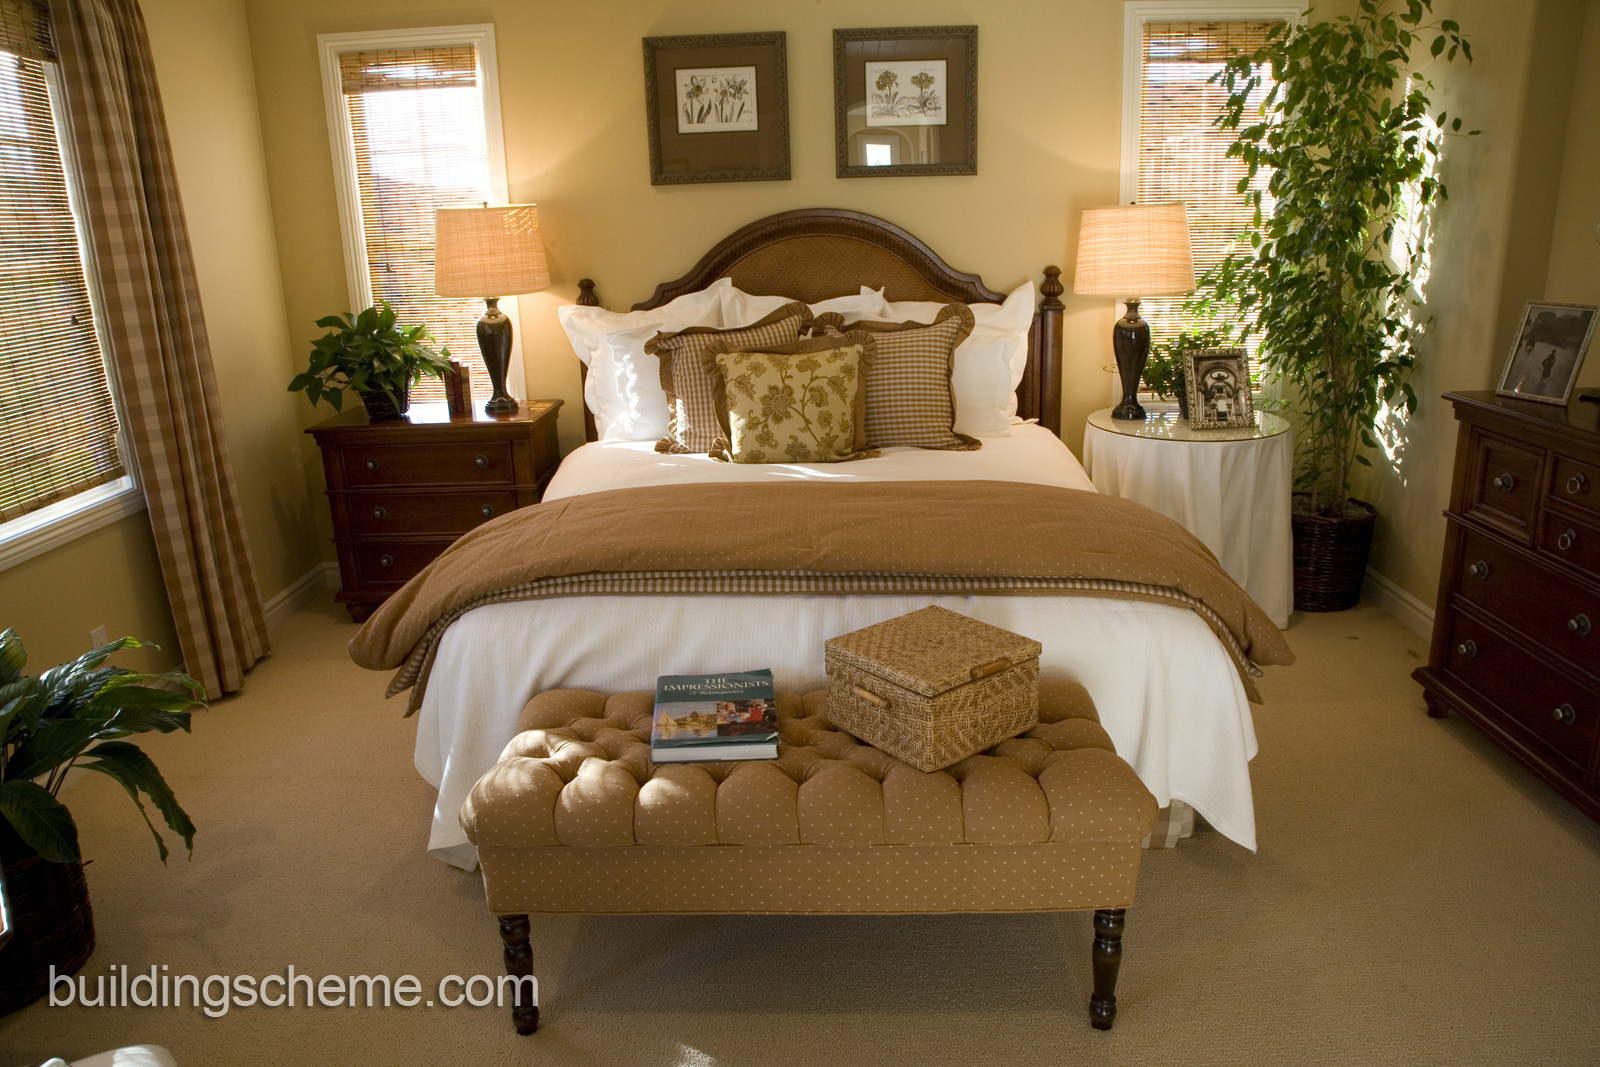 Elegant bedroom ideas decorating 27 decor ideas for Elegant southern home decorating ideas